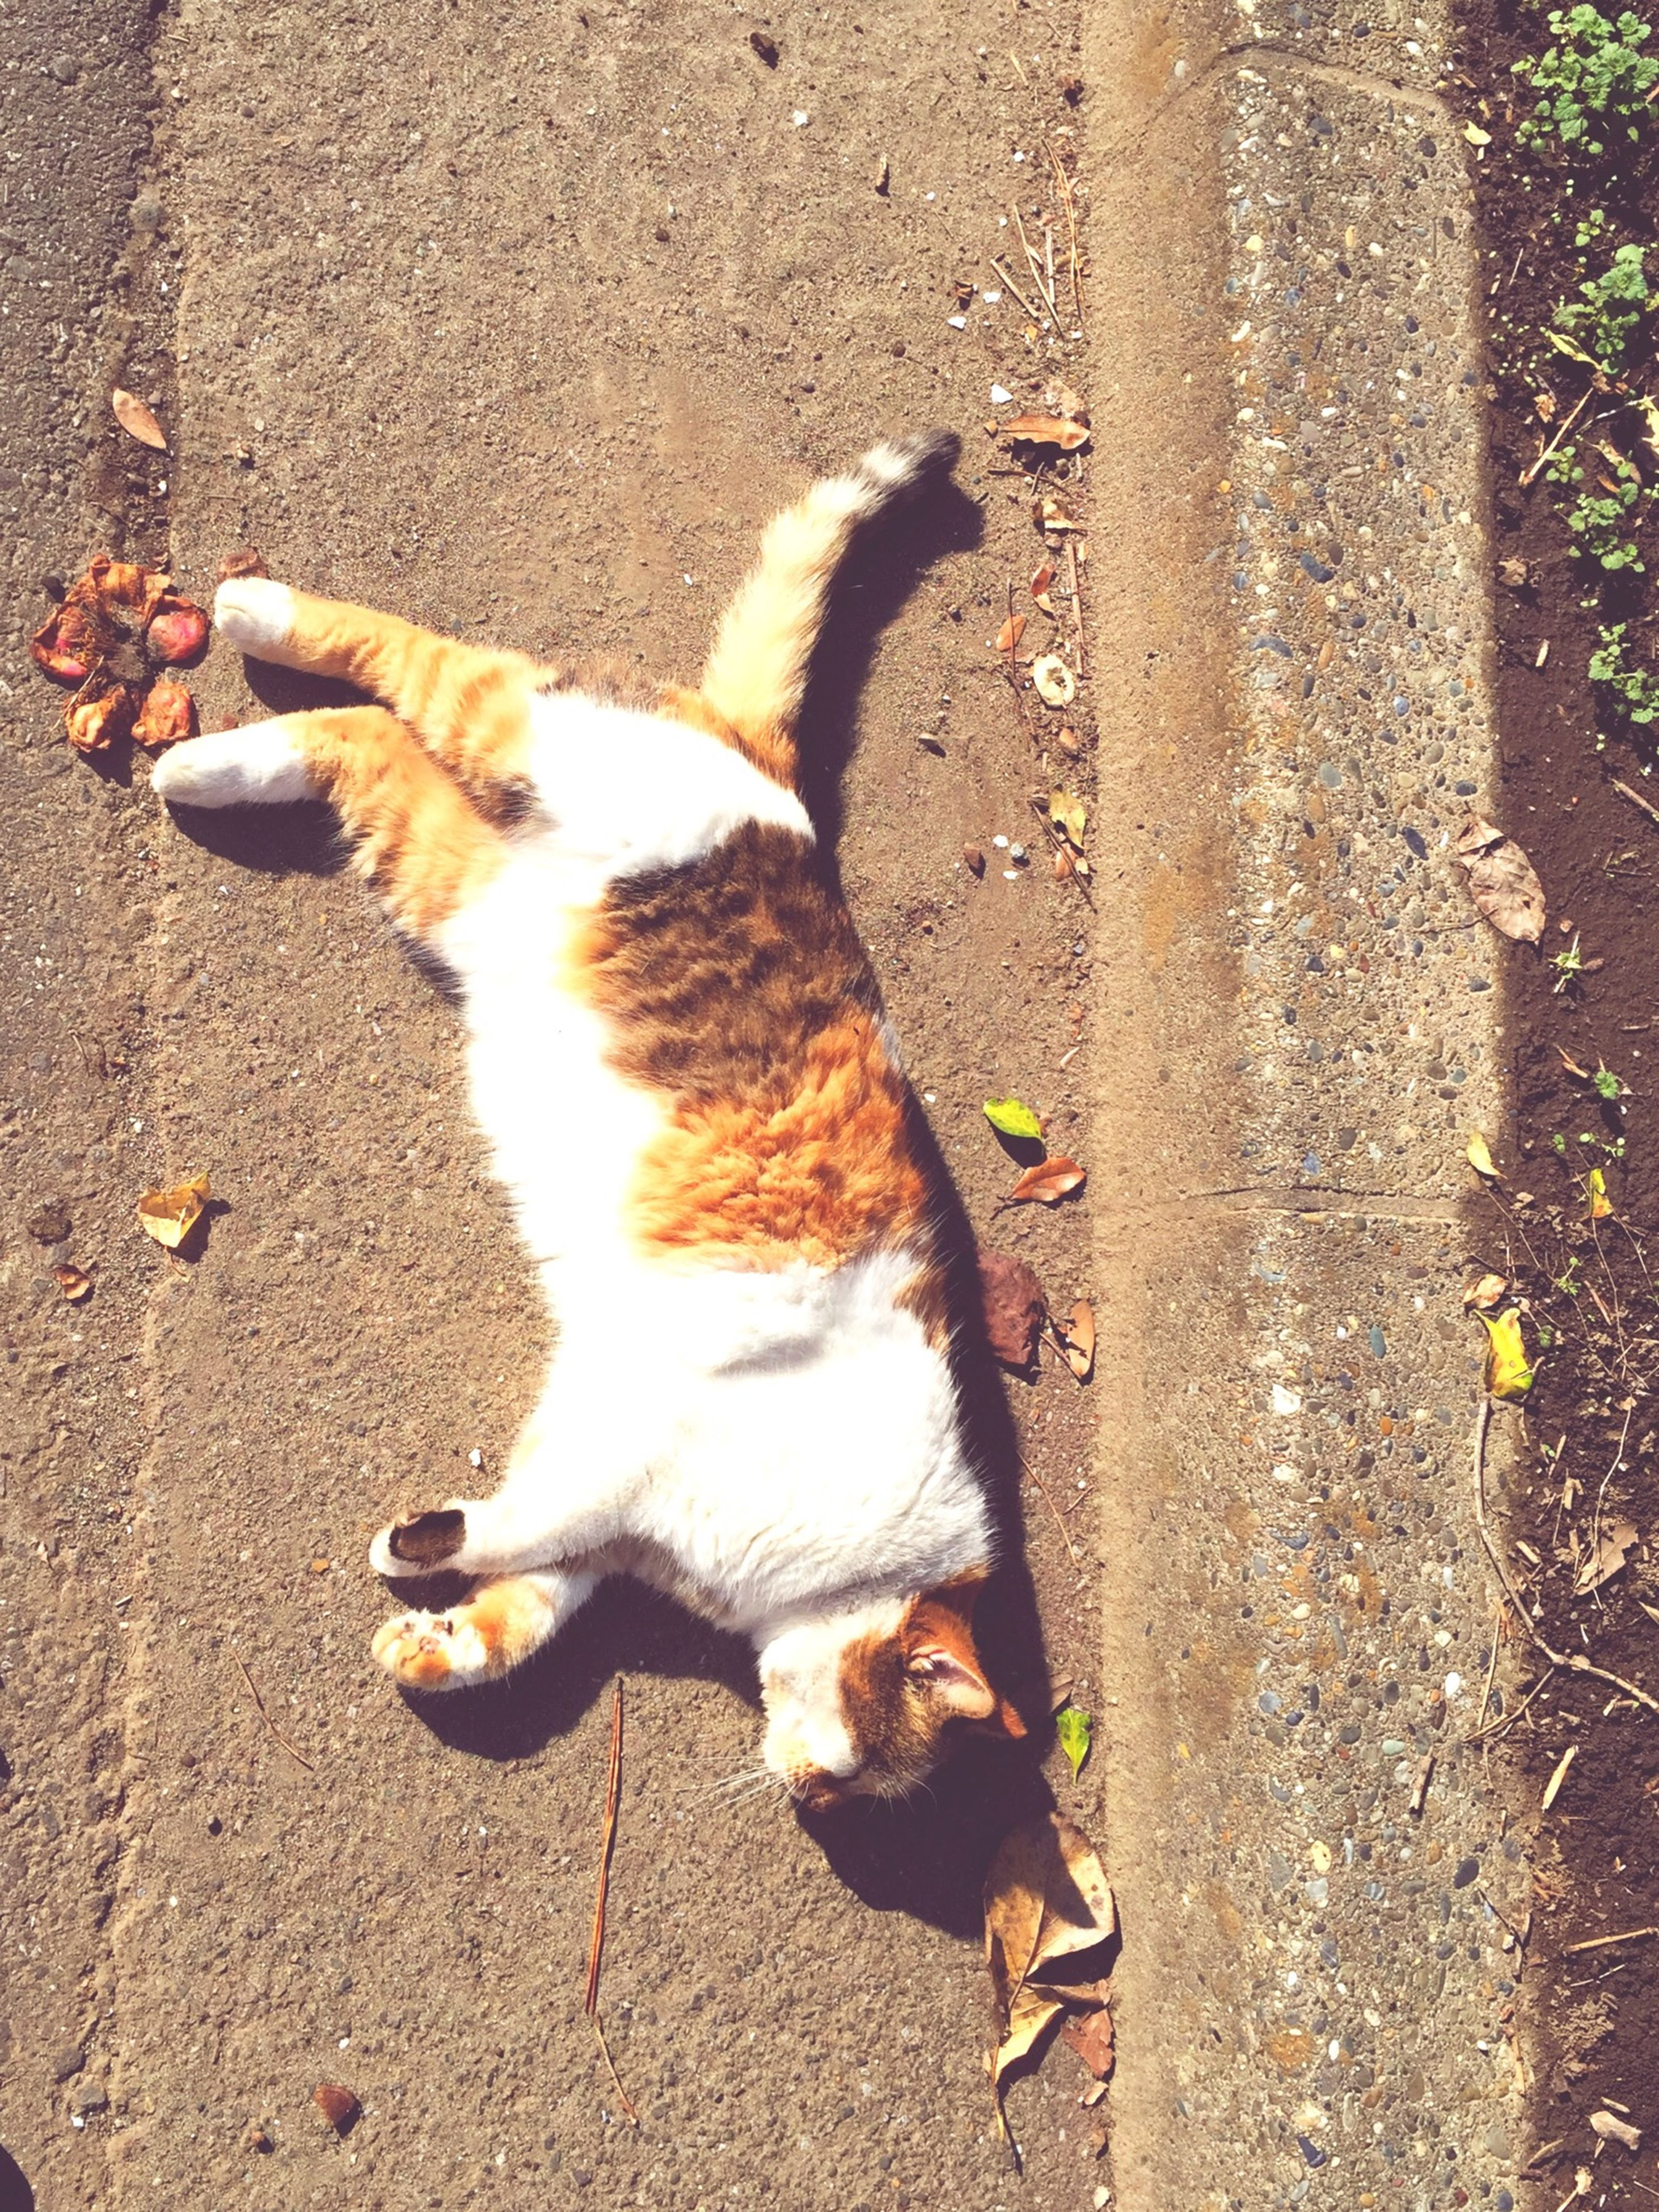 animal themes, domestic animals, pets, one animal, mammal, high angle view, domestic cat, feline, cat, dog, street, full length, sunlight, stray animal, lying down, zoology, two animals, relaxation, outdoors, shadow